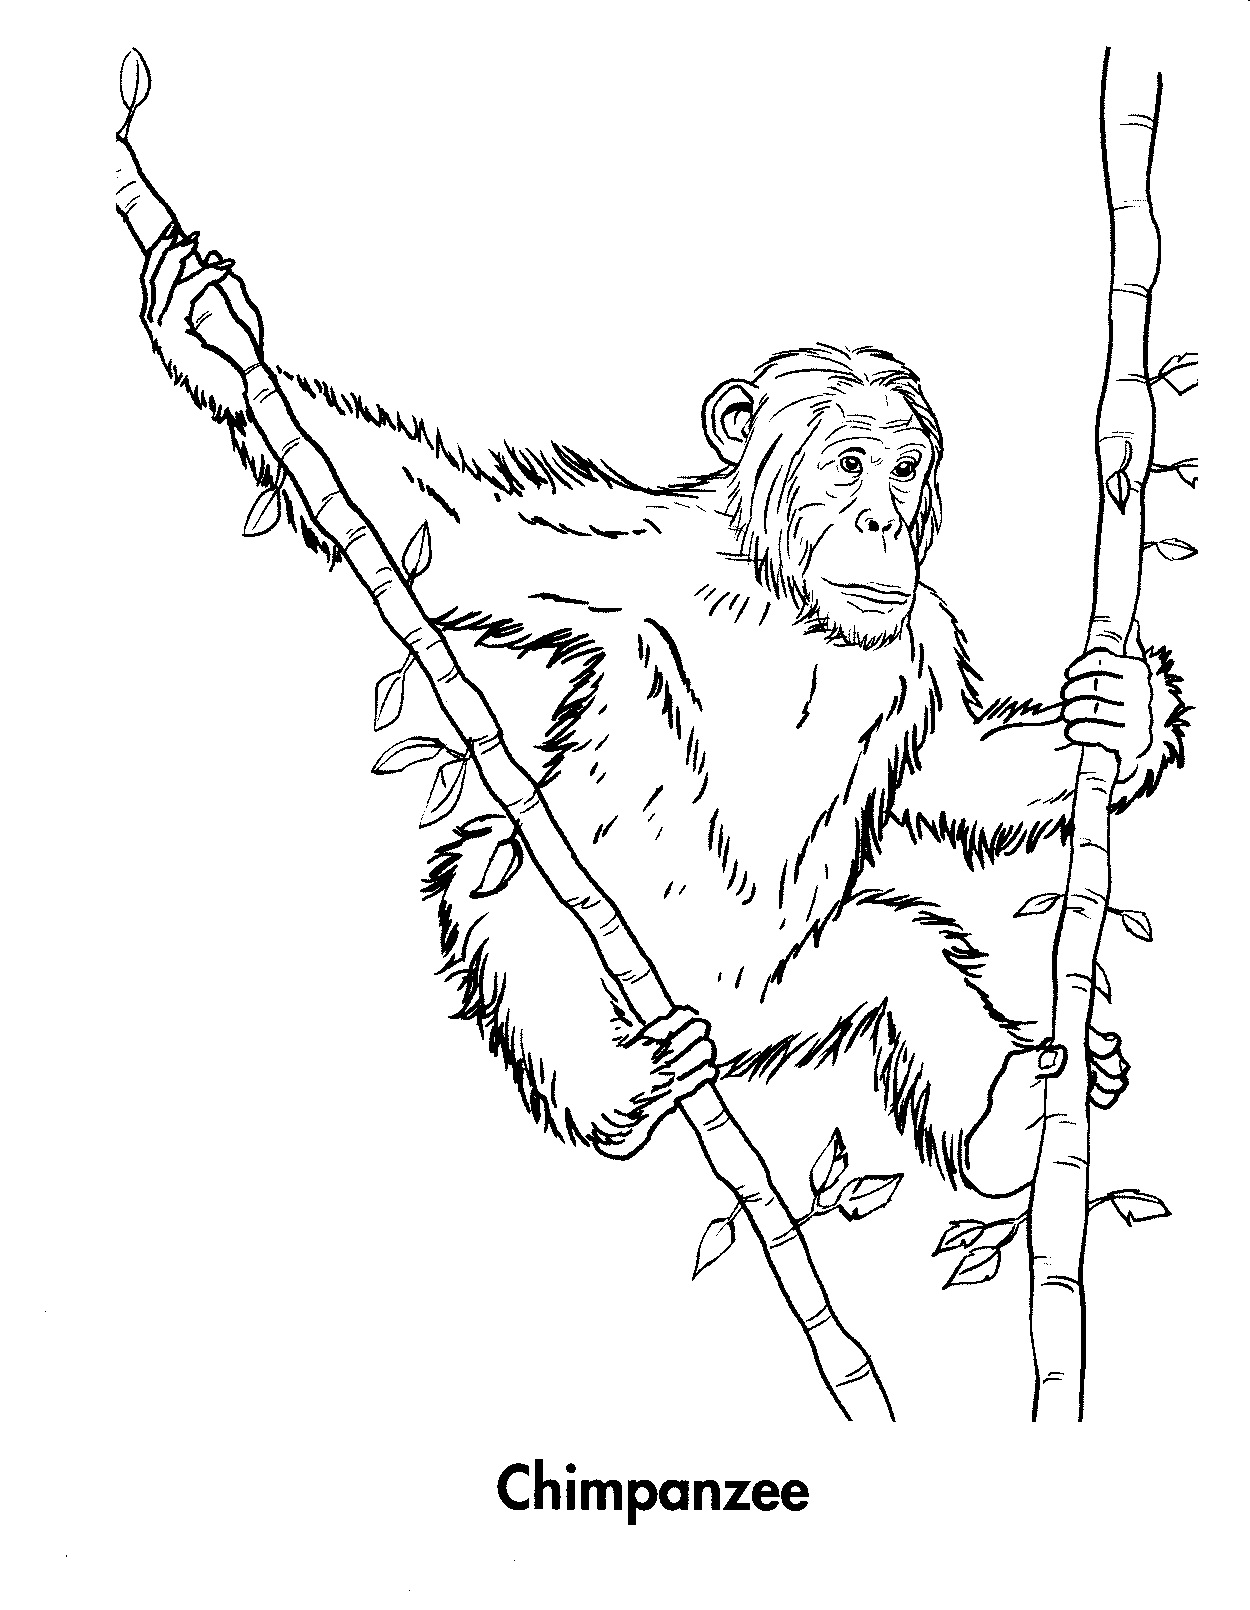 Free Printable Chimpanzee Coloring Pages For Kids - chimpanzee coloring pages